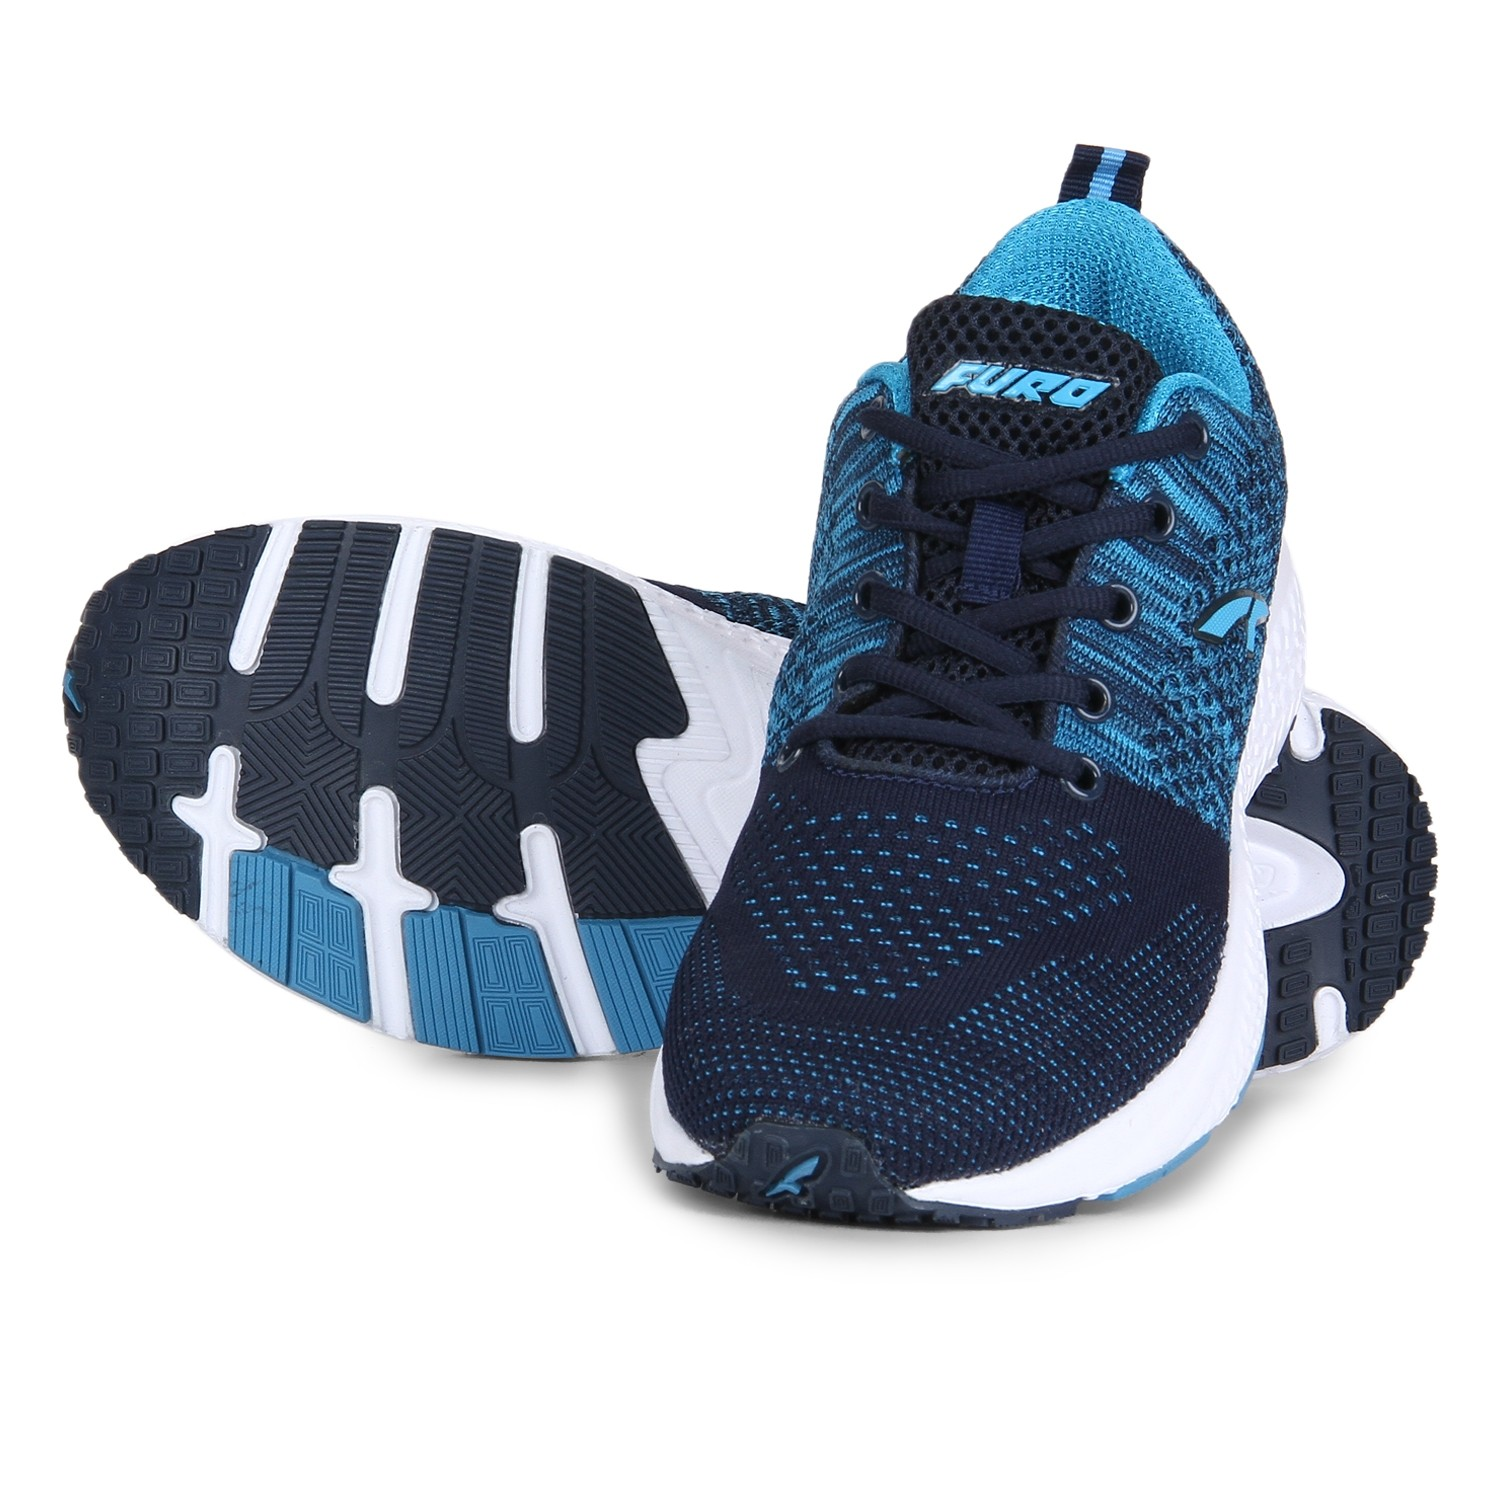 FURO R1014 | Running Shoes for Men